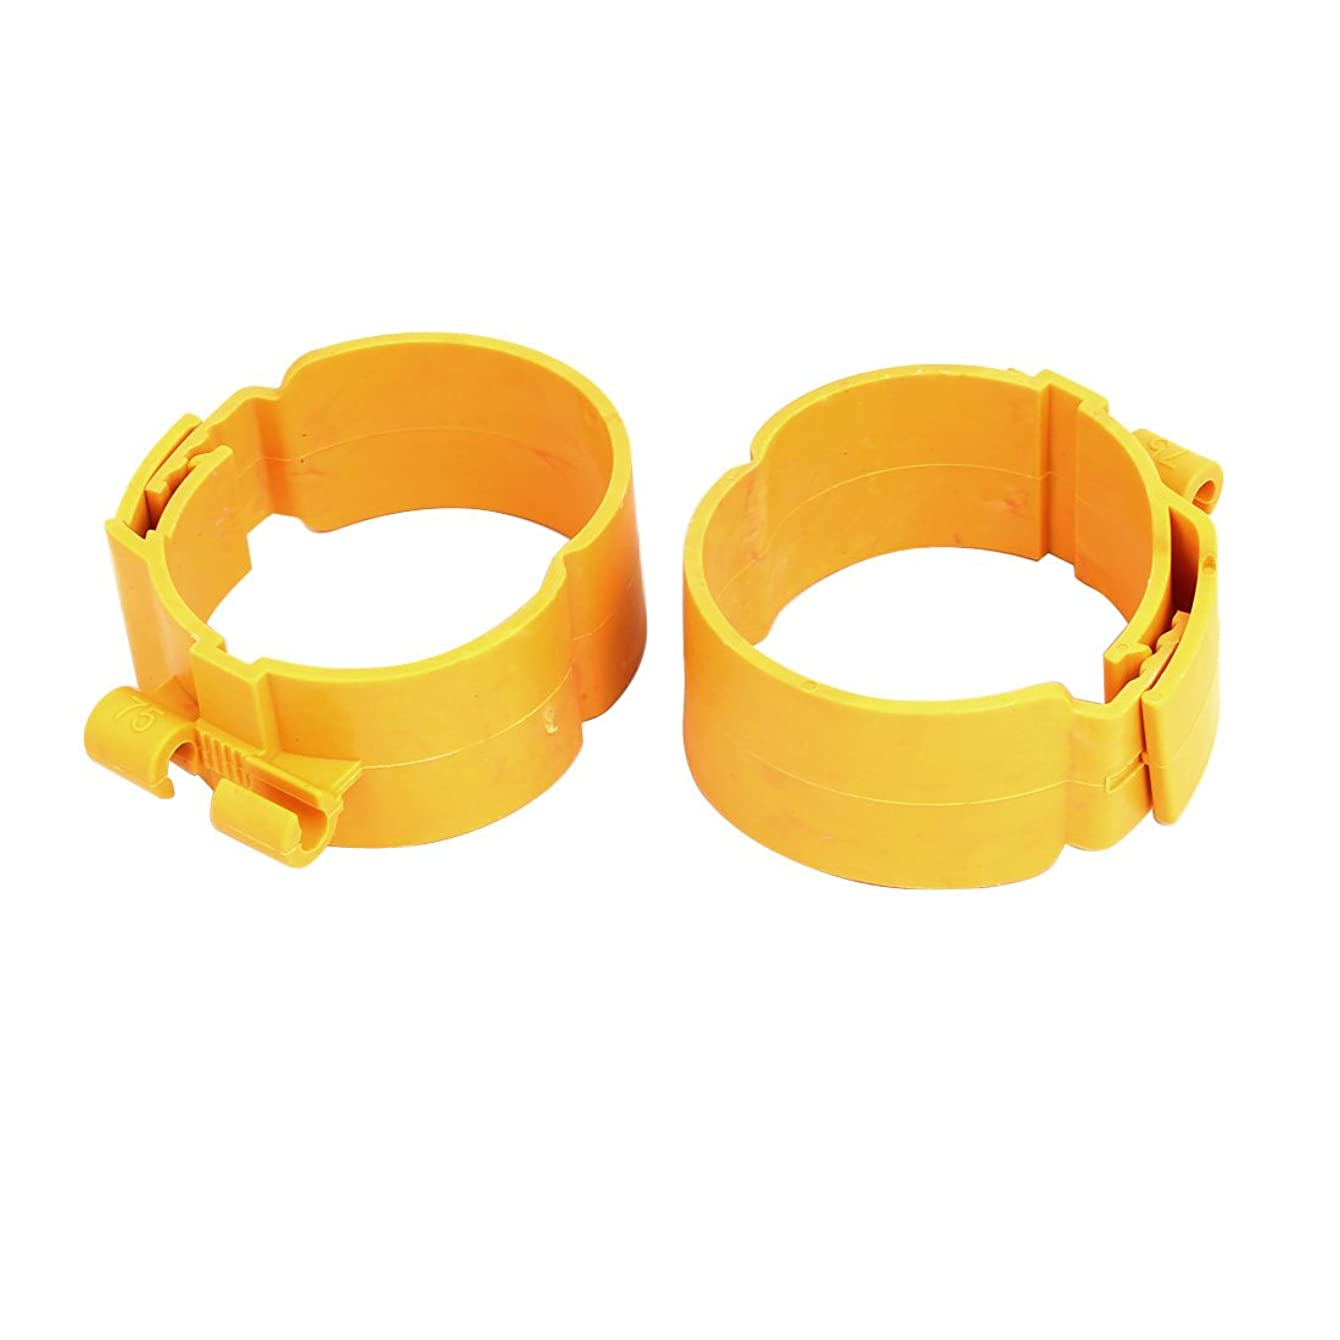 Aexit 75mm Dia Civil Equipment Hardware Accessories 38mm Width Central Air Conditioner Pipe Clip Clamp Yellow 2pcs Model:31as225qo411